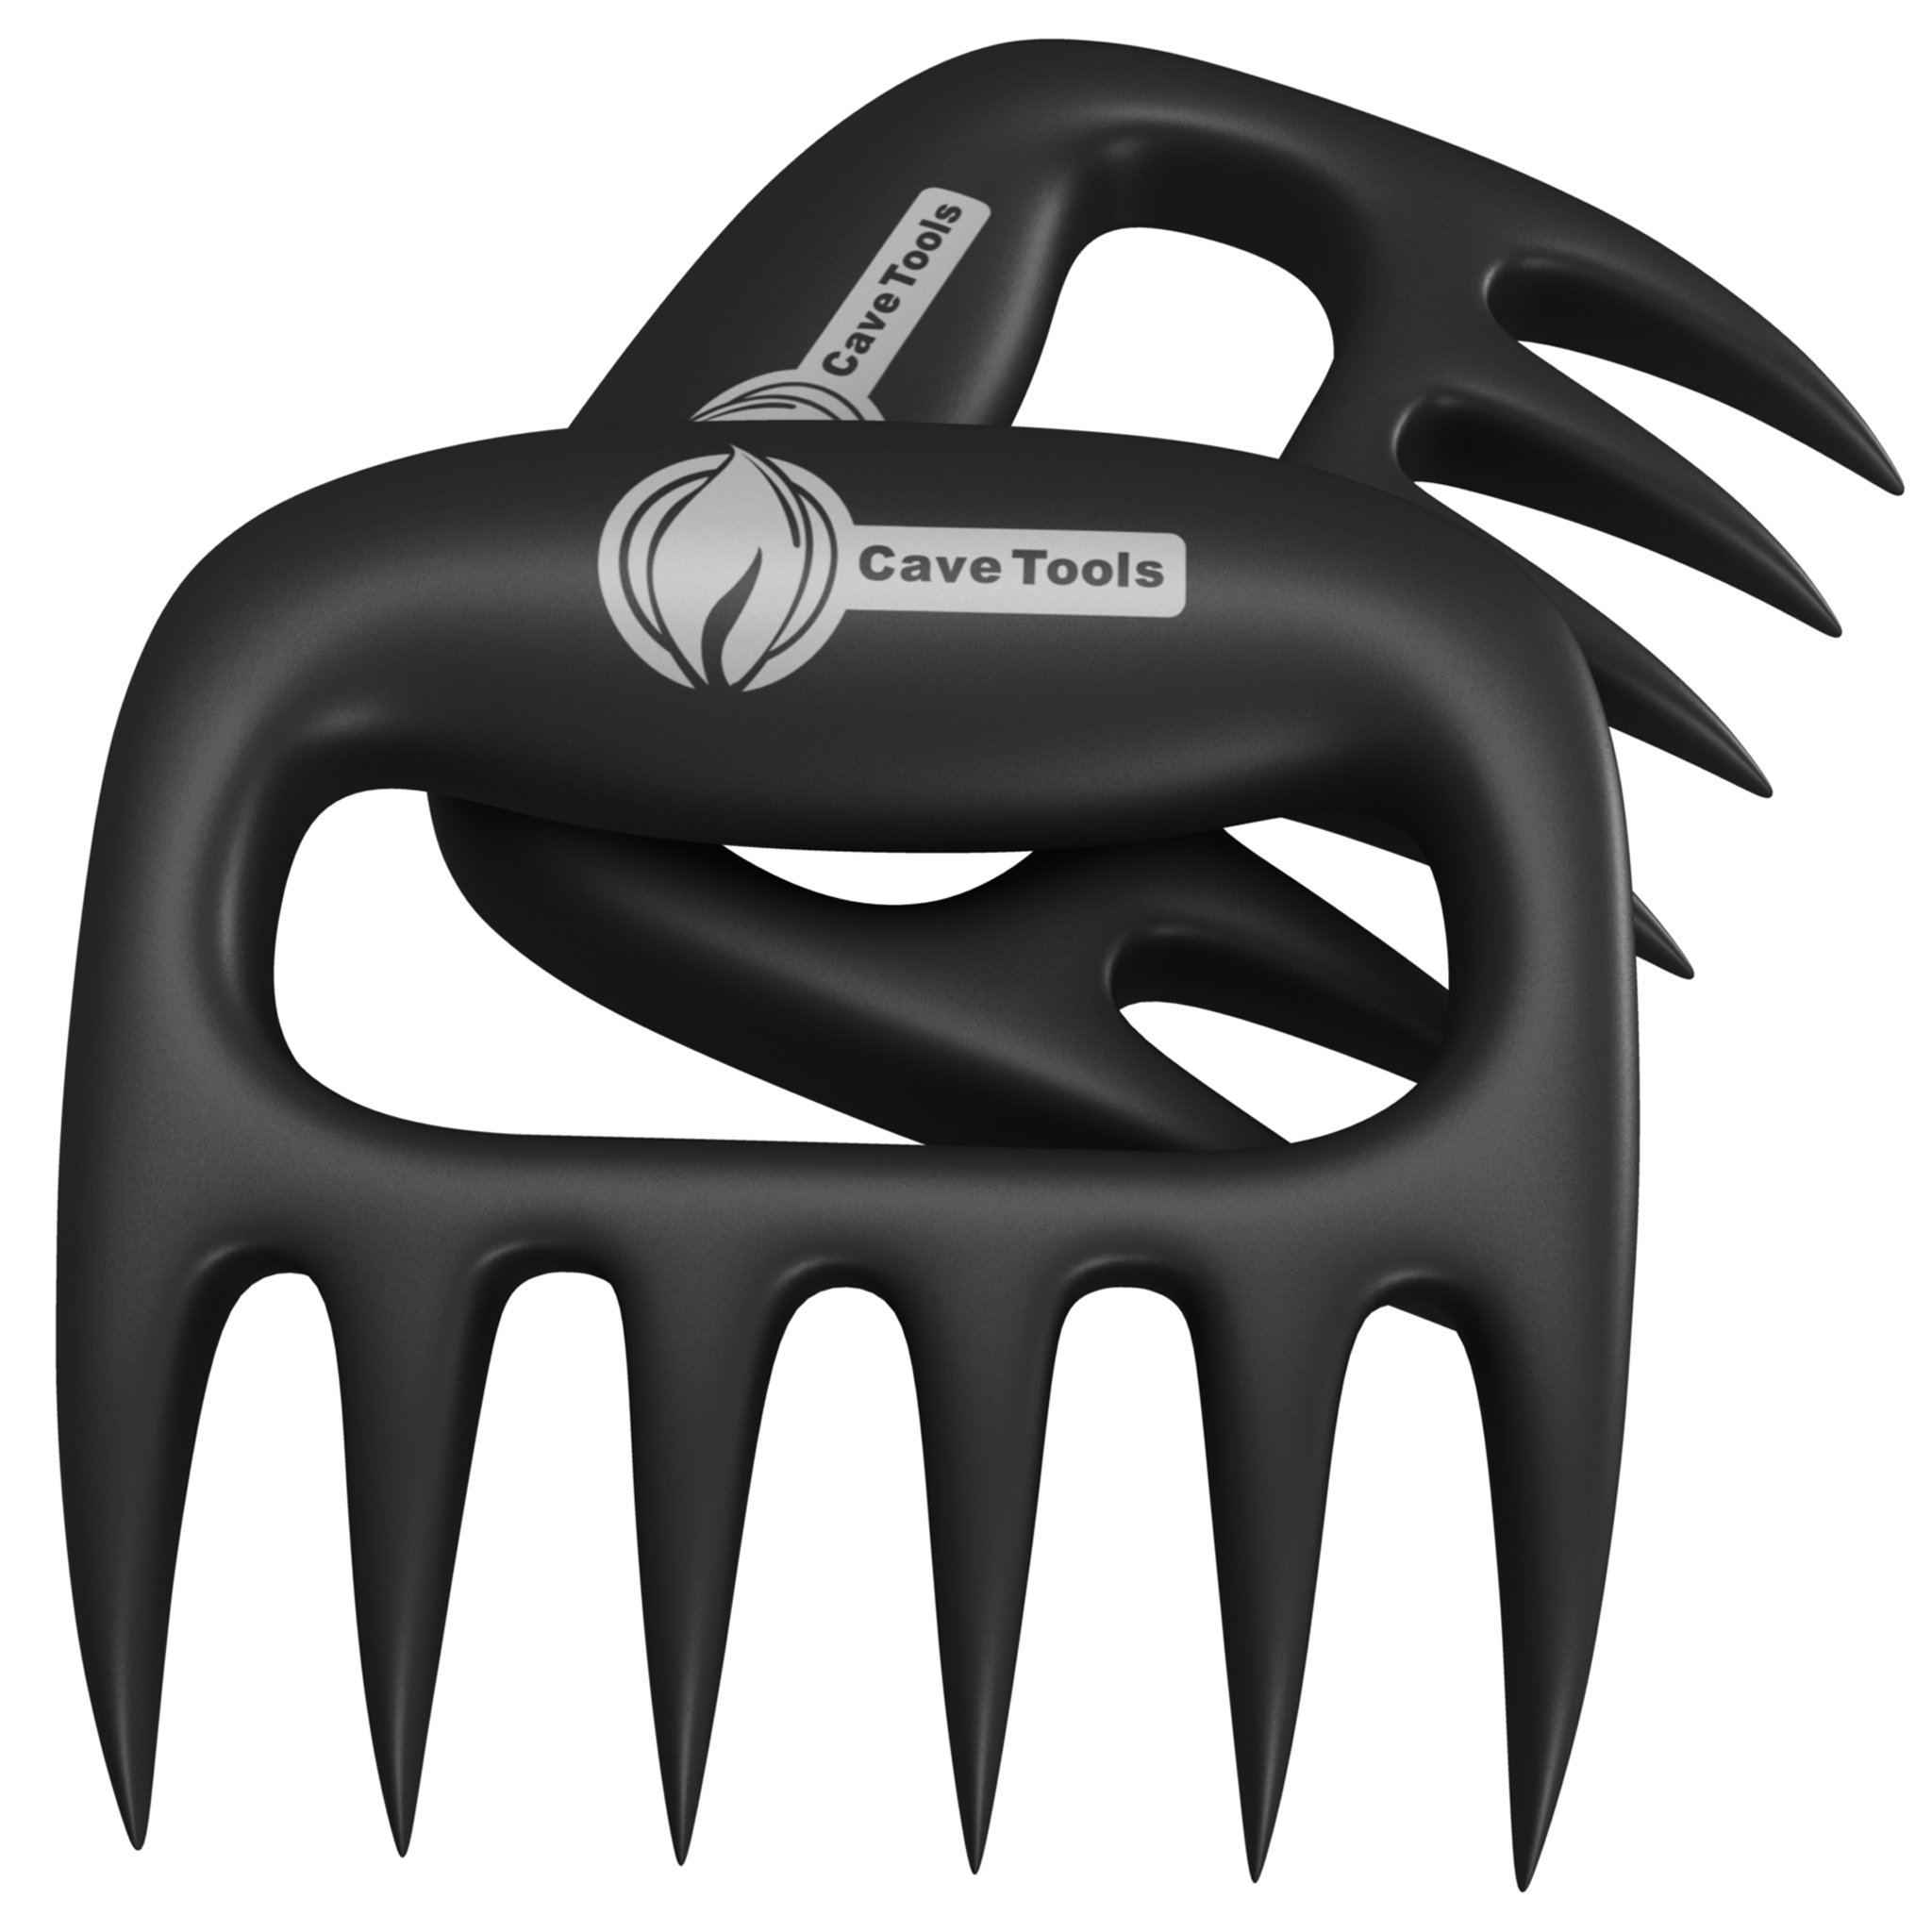 Pulled Pork Shredder Claws - Strongest BBQ Meat Forks - Shredding Handling & Carving Food - Claw Handler Set for Pulling Brisket from Grill Smoker or Slow Cooker - BPA Free Barbecue Paws by Cave Tools